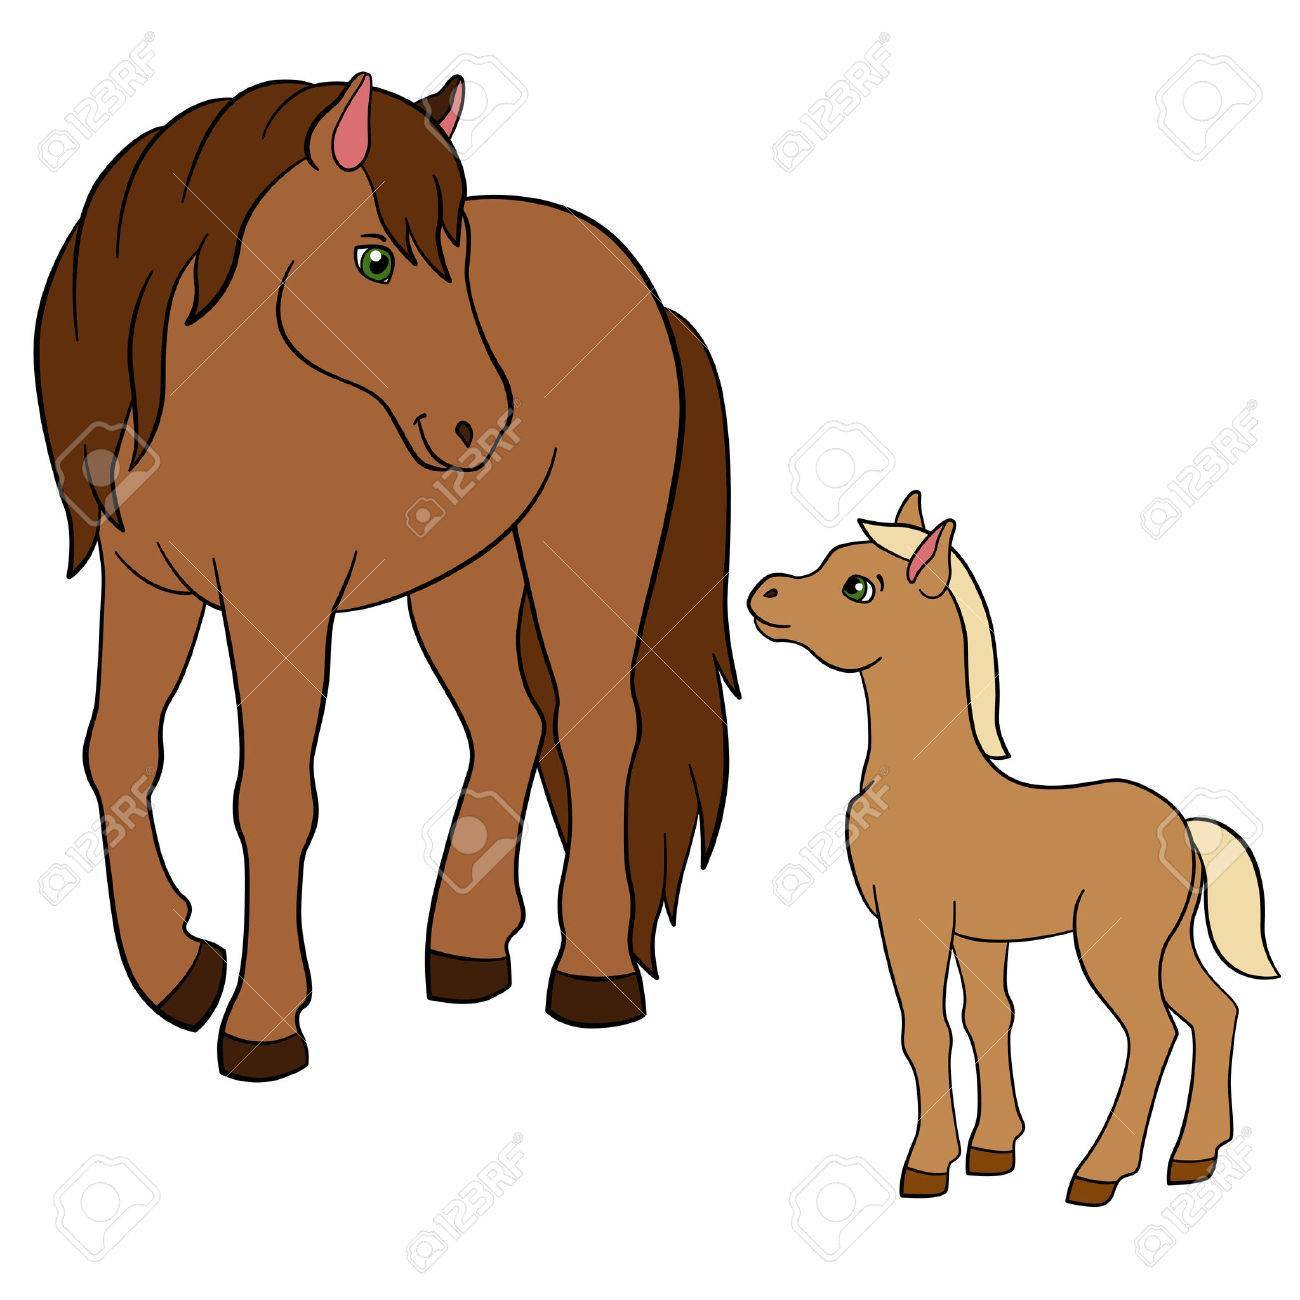 Horse and foal clipart 4 » Clipart Portal.